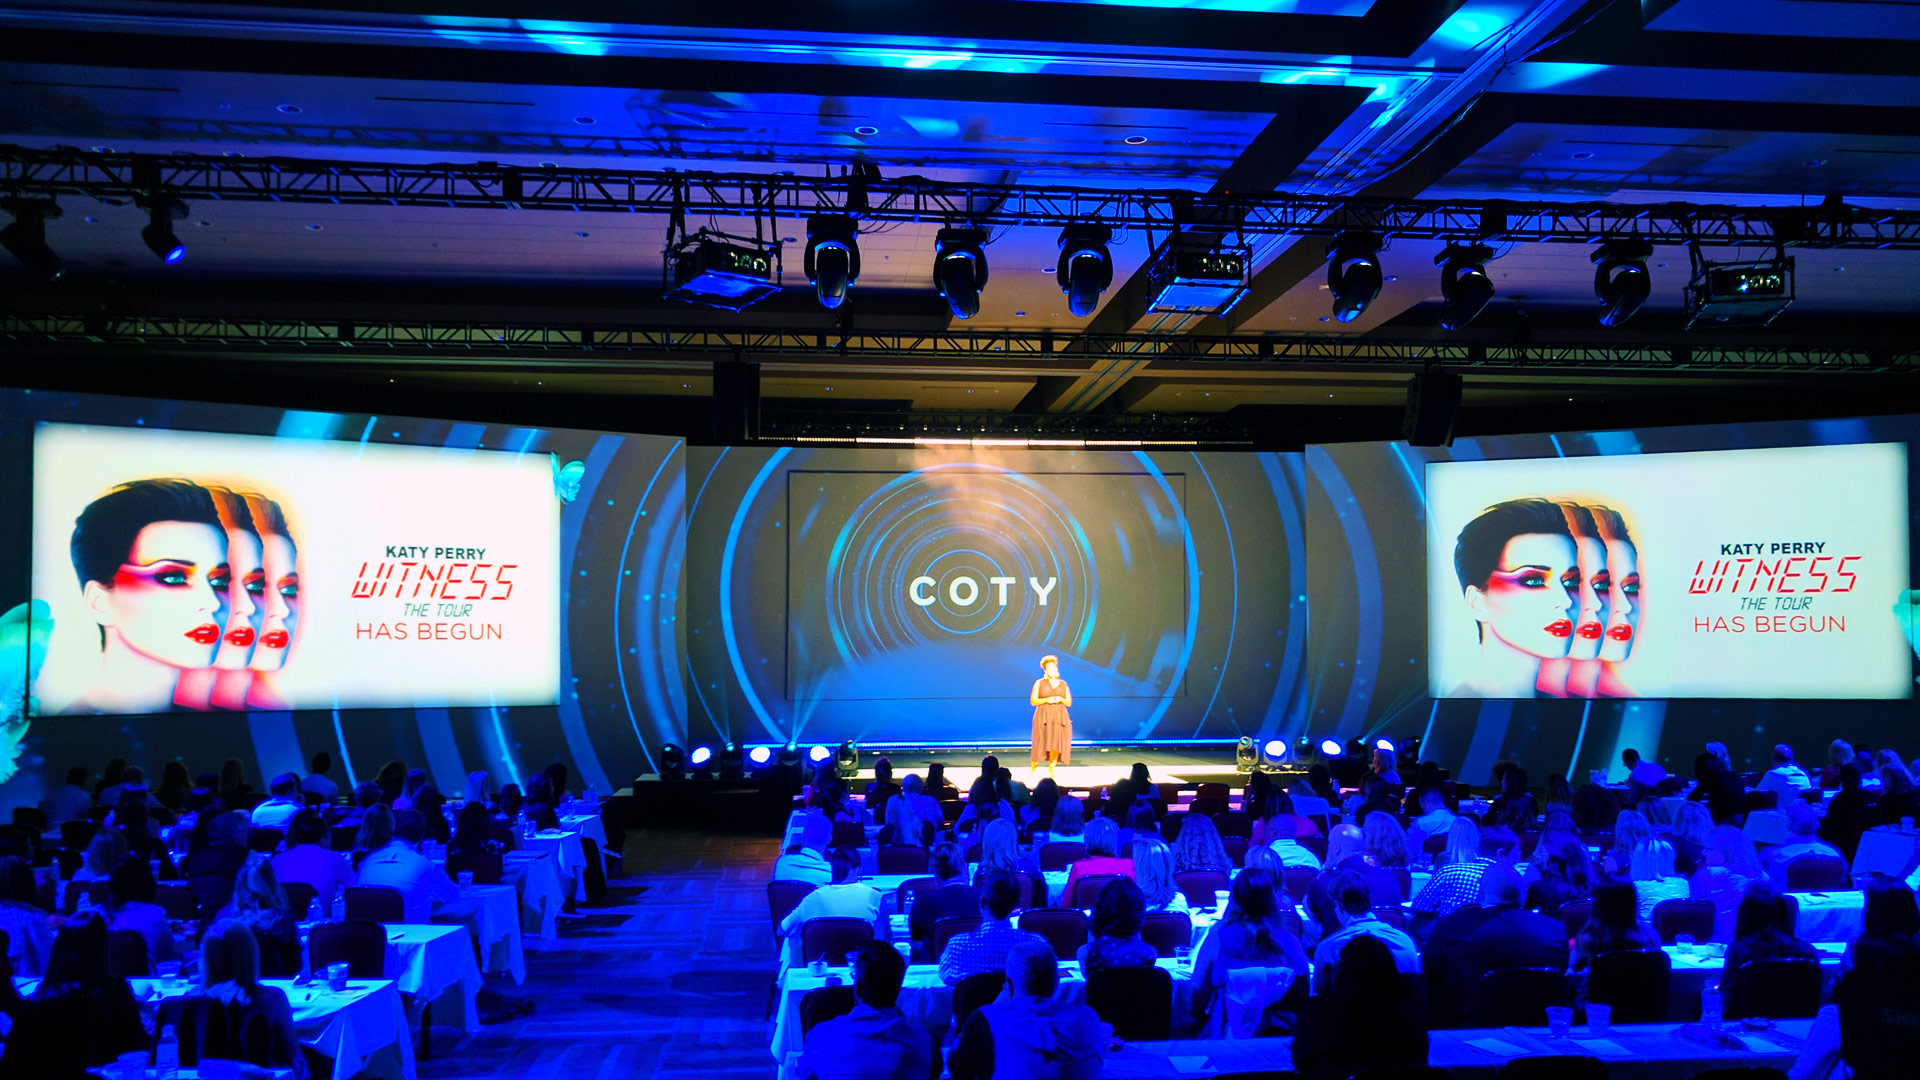 Corporate presentation projection mapping